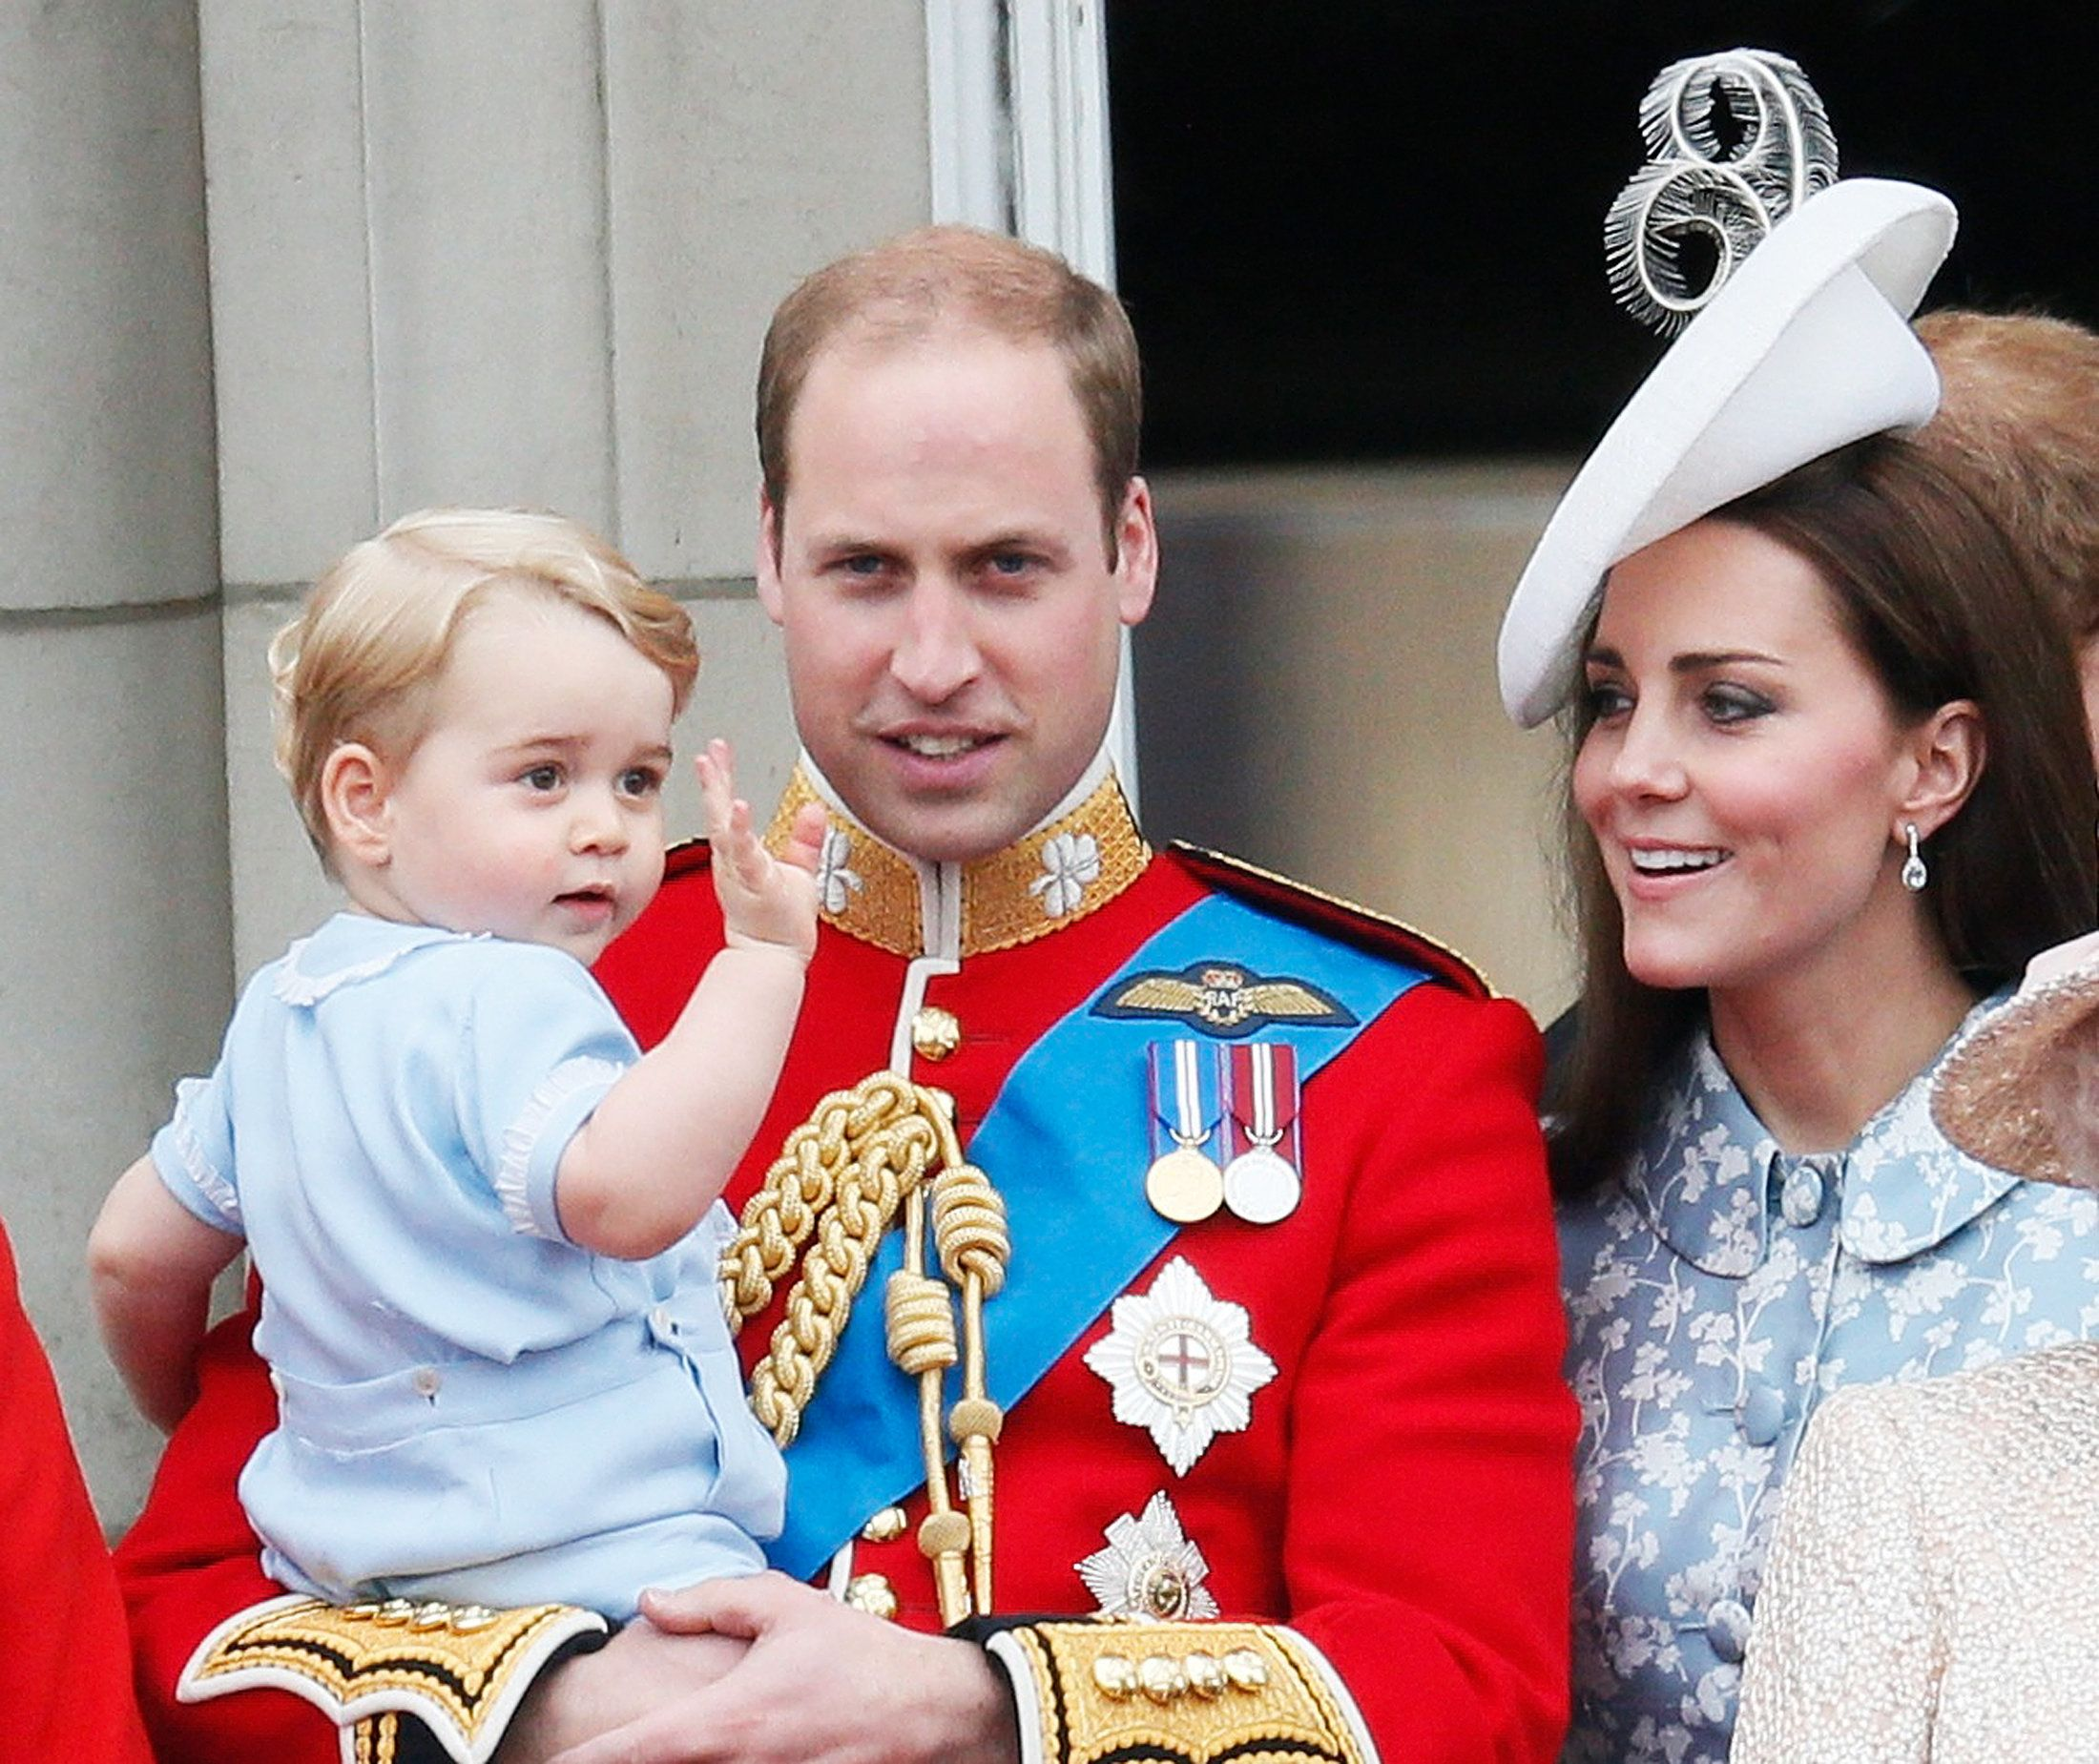 Prince William holds Prince George as he waves on the balcony at Buckingham Palace after the Trooping the Colour ceremony at